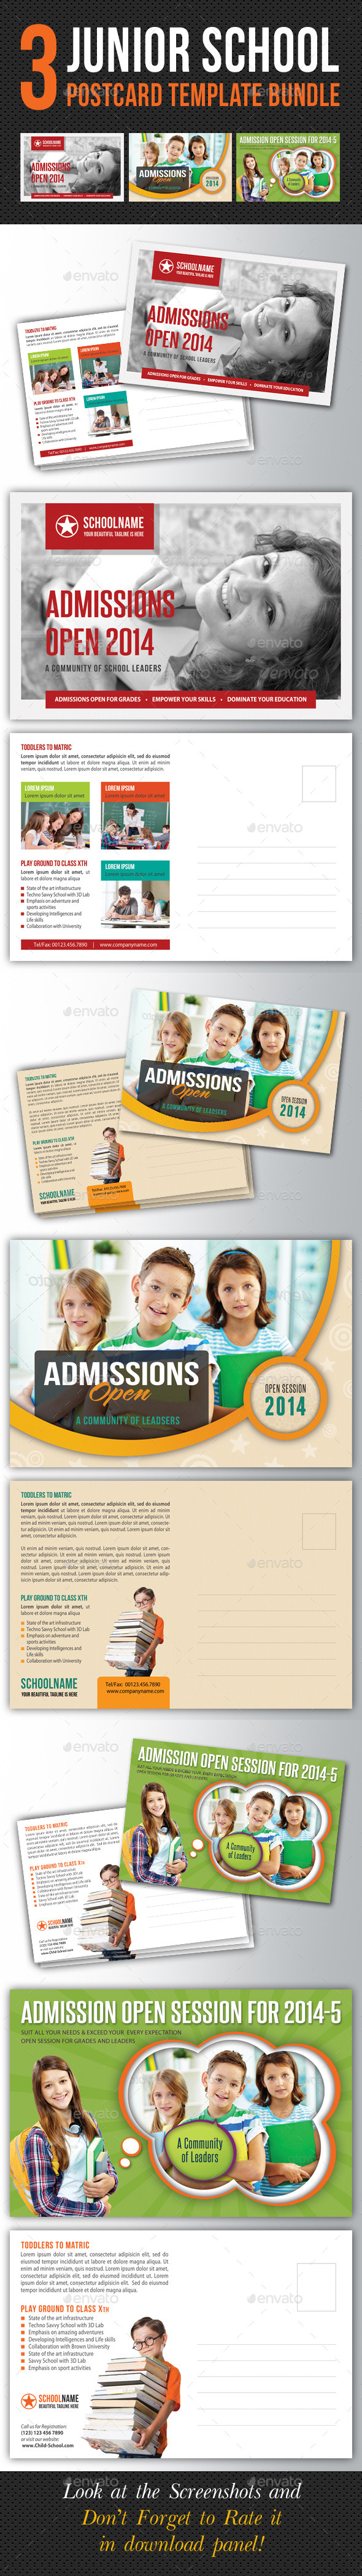 GraphicRiver 3 in 1 Junior School Promotion Postcard Bundle 01 10649458